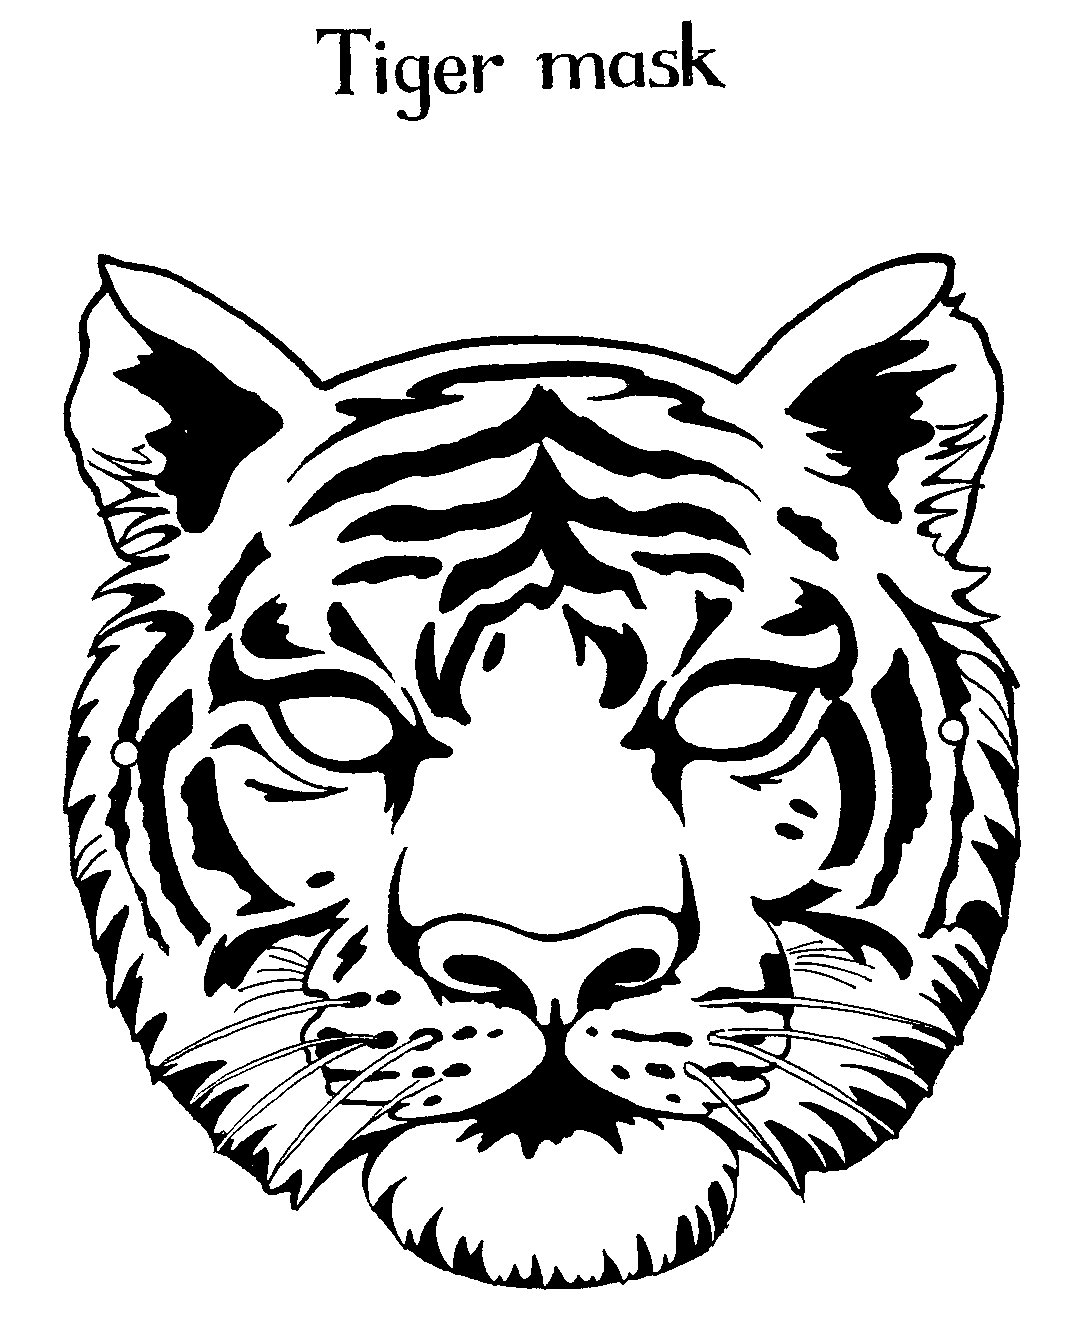 tiger face coloring tiger face mask template sketch coloring page coloring tiger face